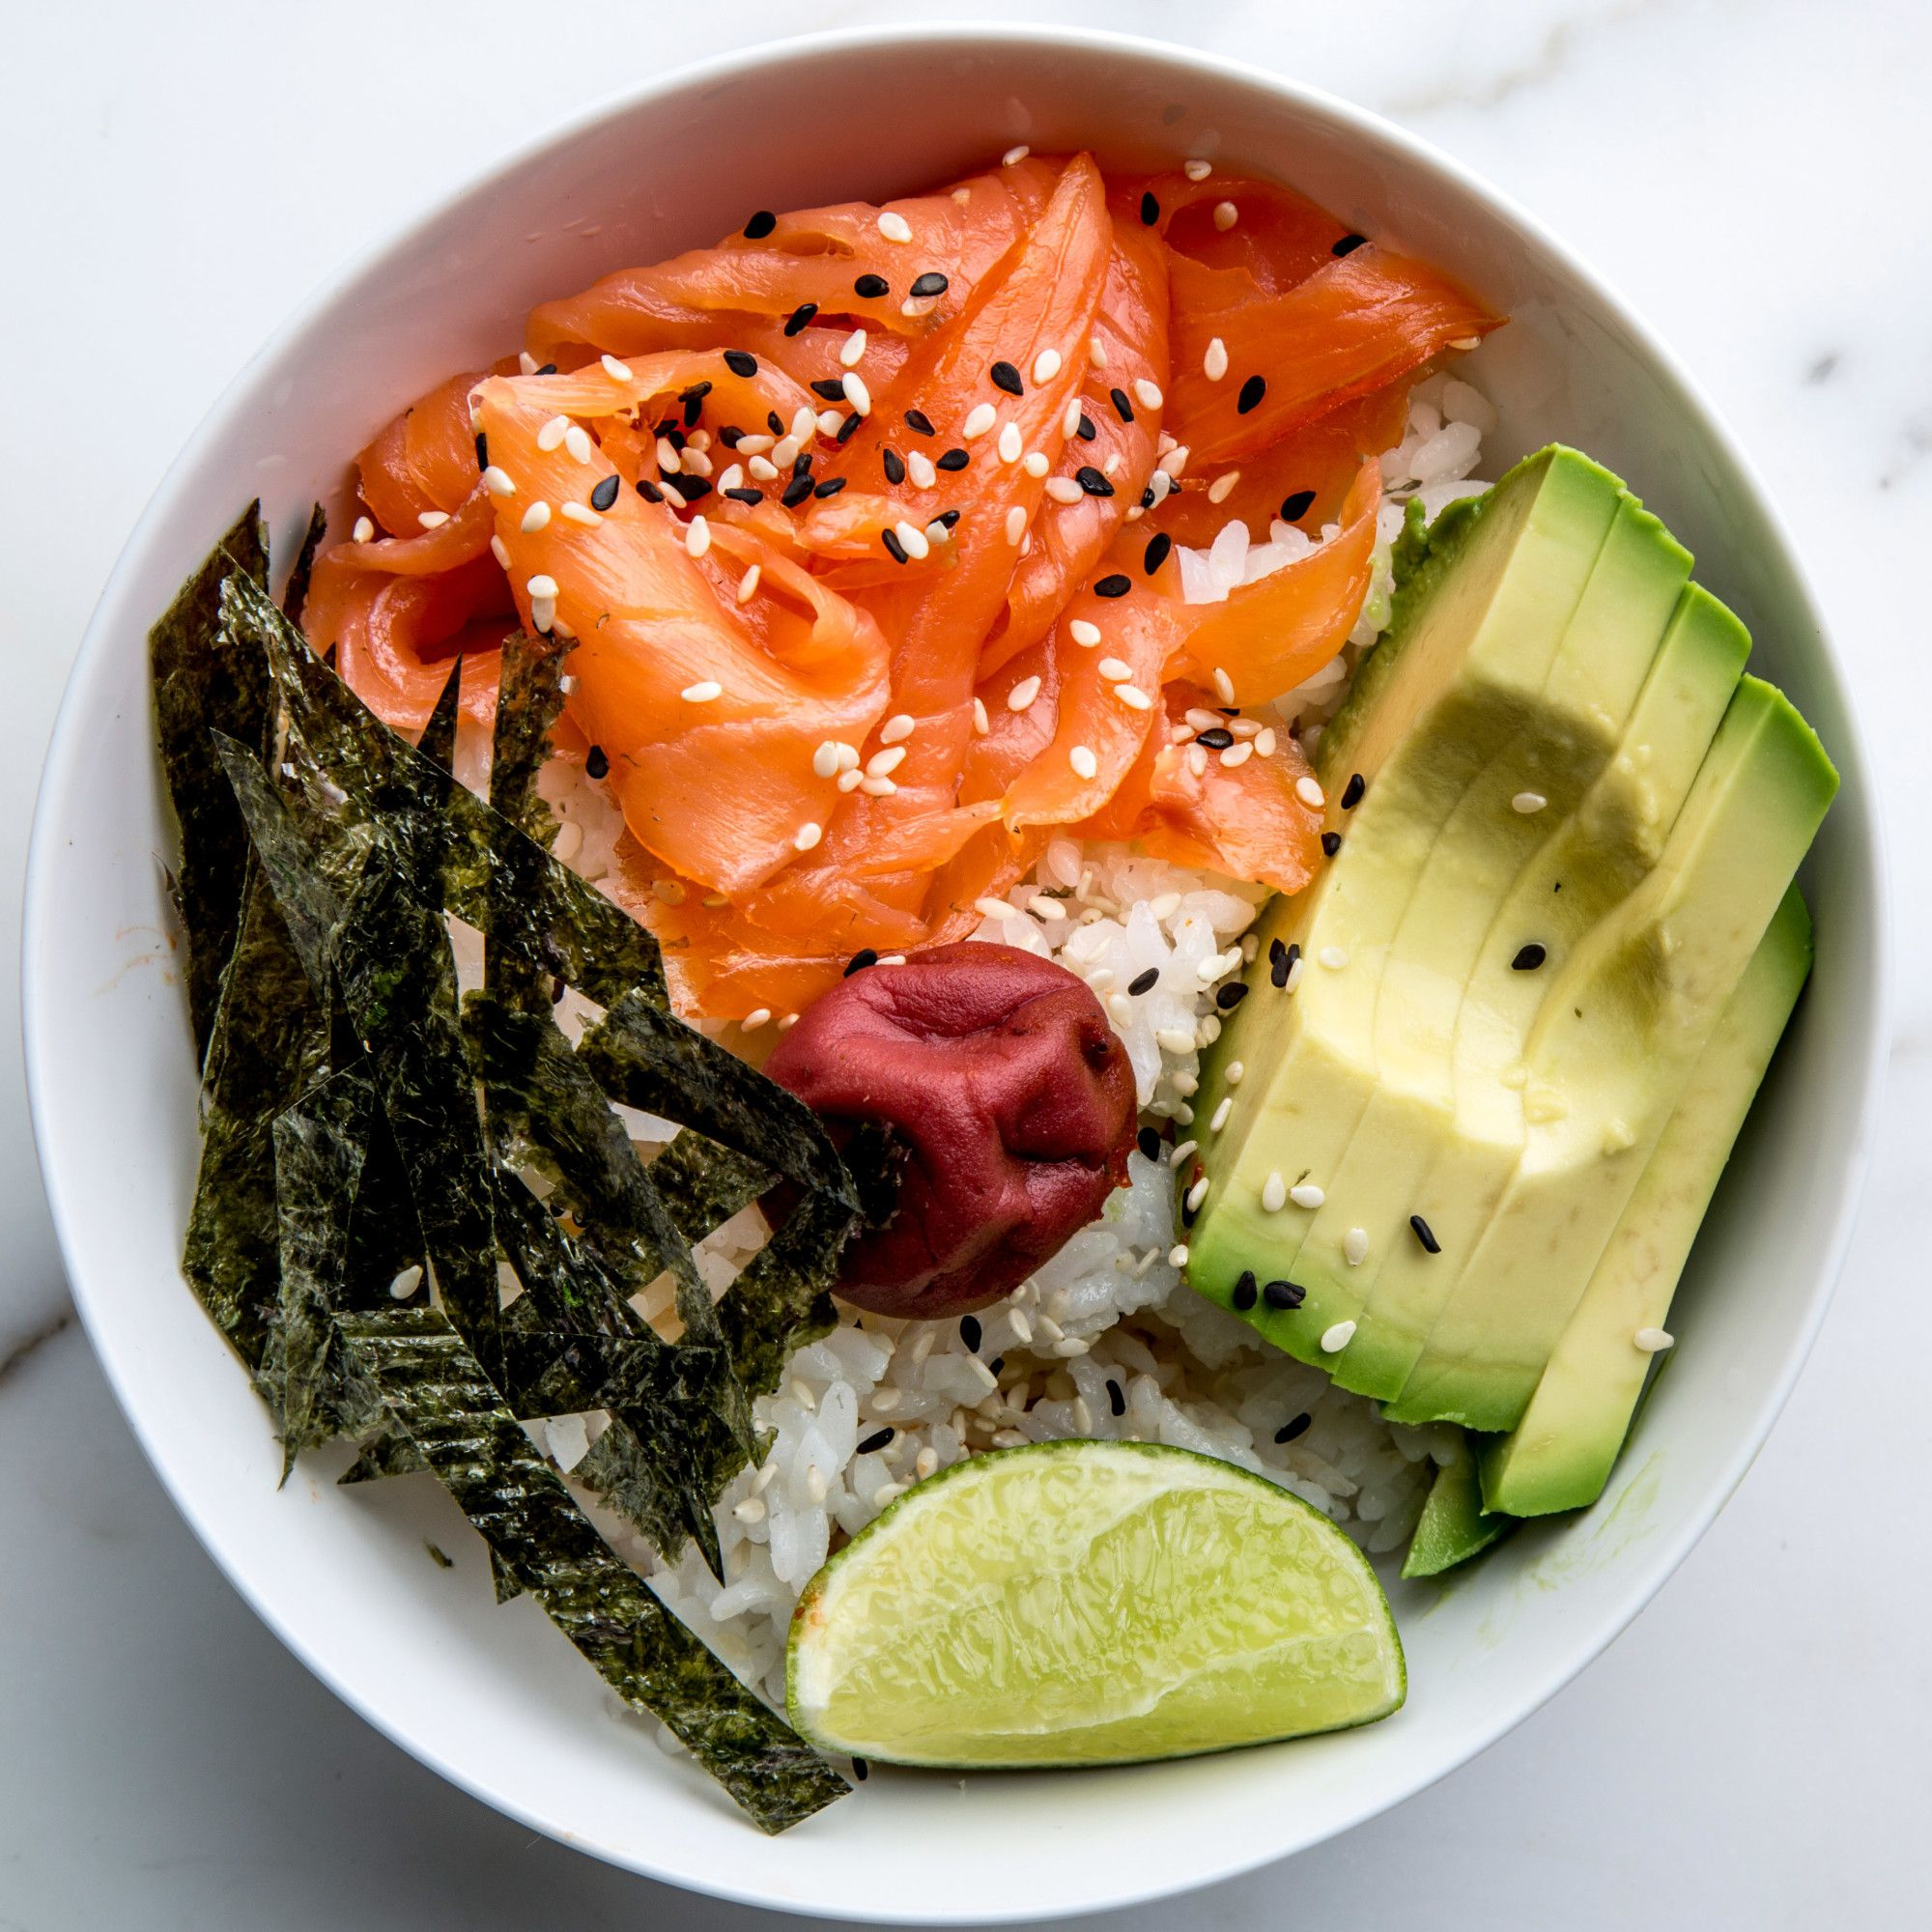 A breakfast bowl worth making every morning, because the Japanese always seem to do it better. Pour apprendre à cuisiner japonais : http://amzn.to/2kT1eNM